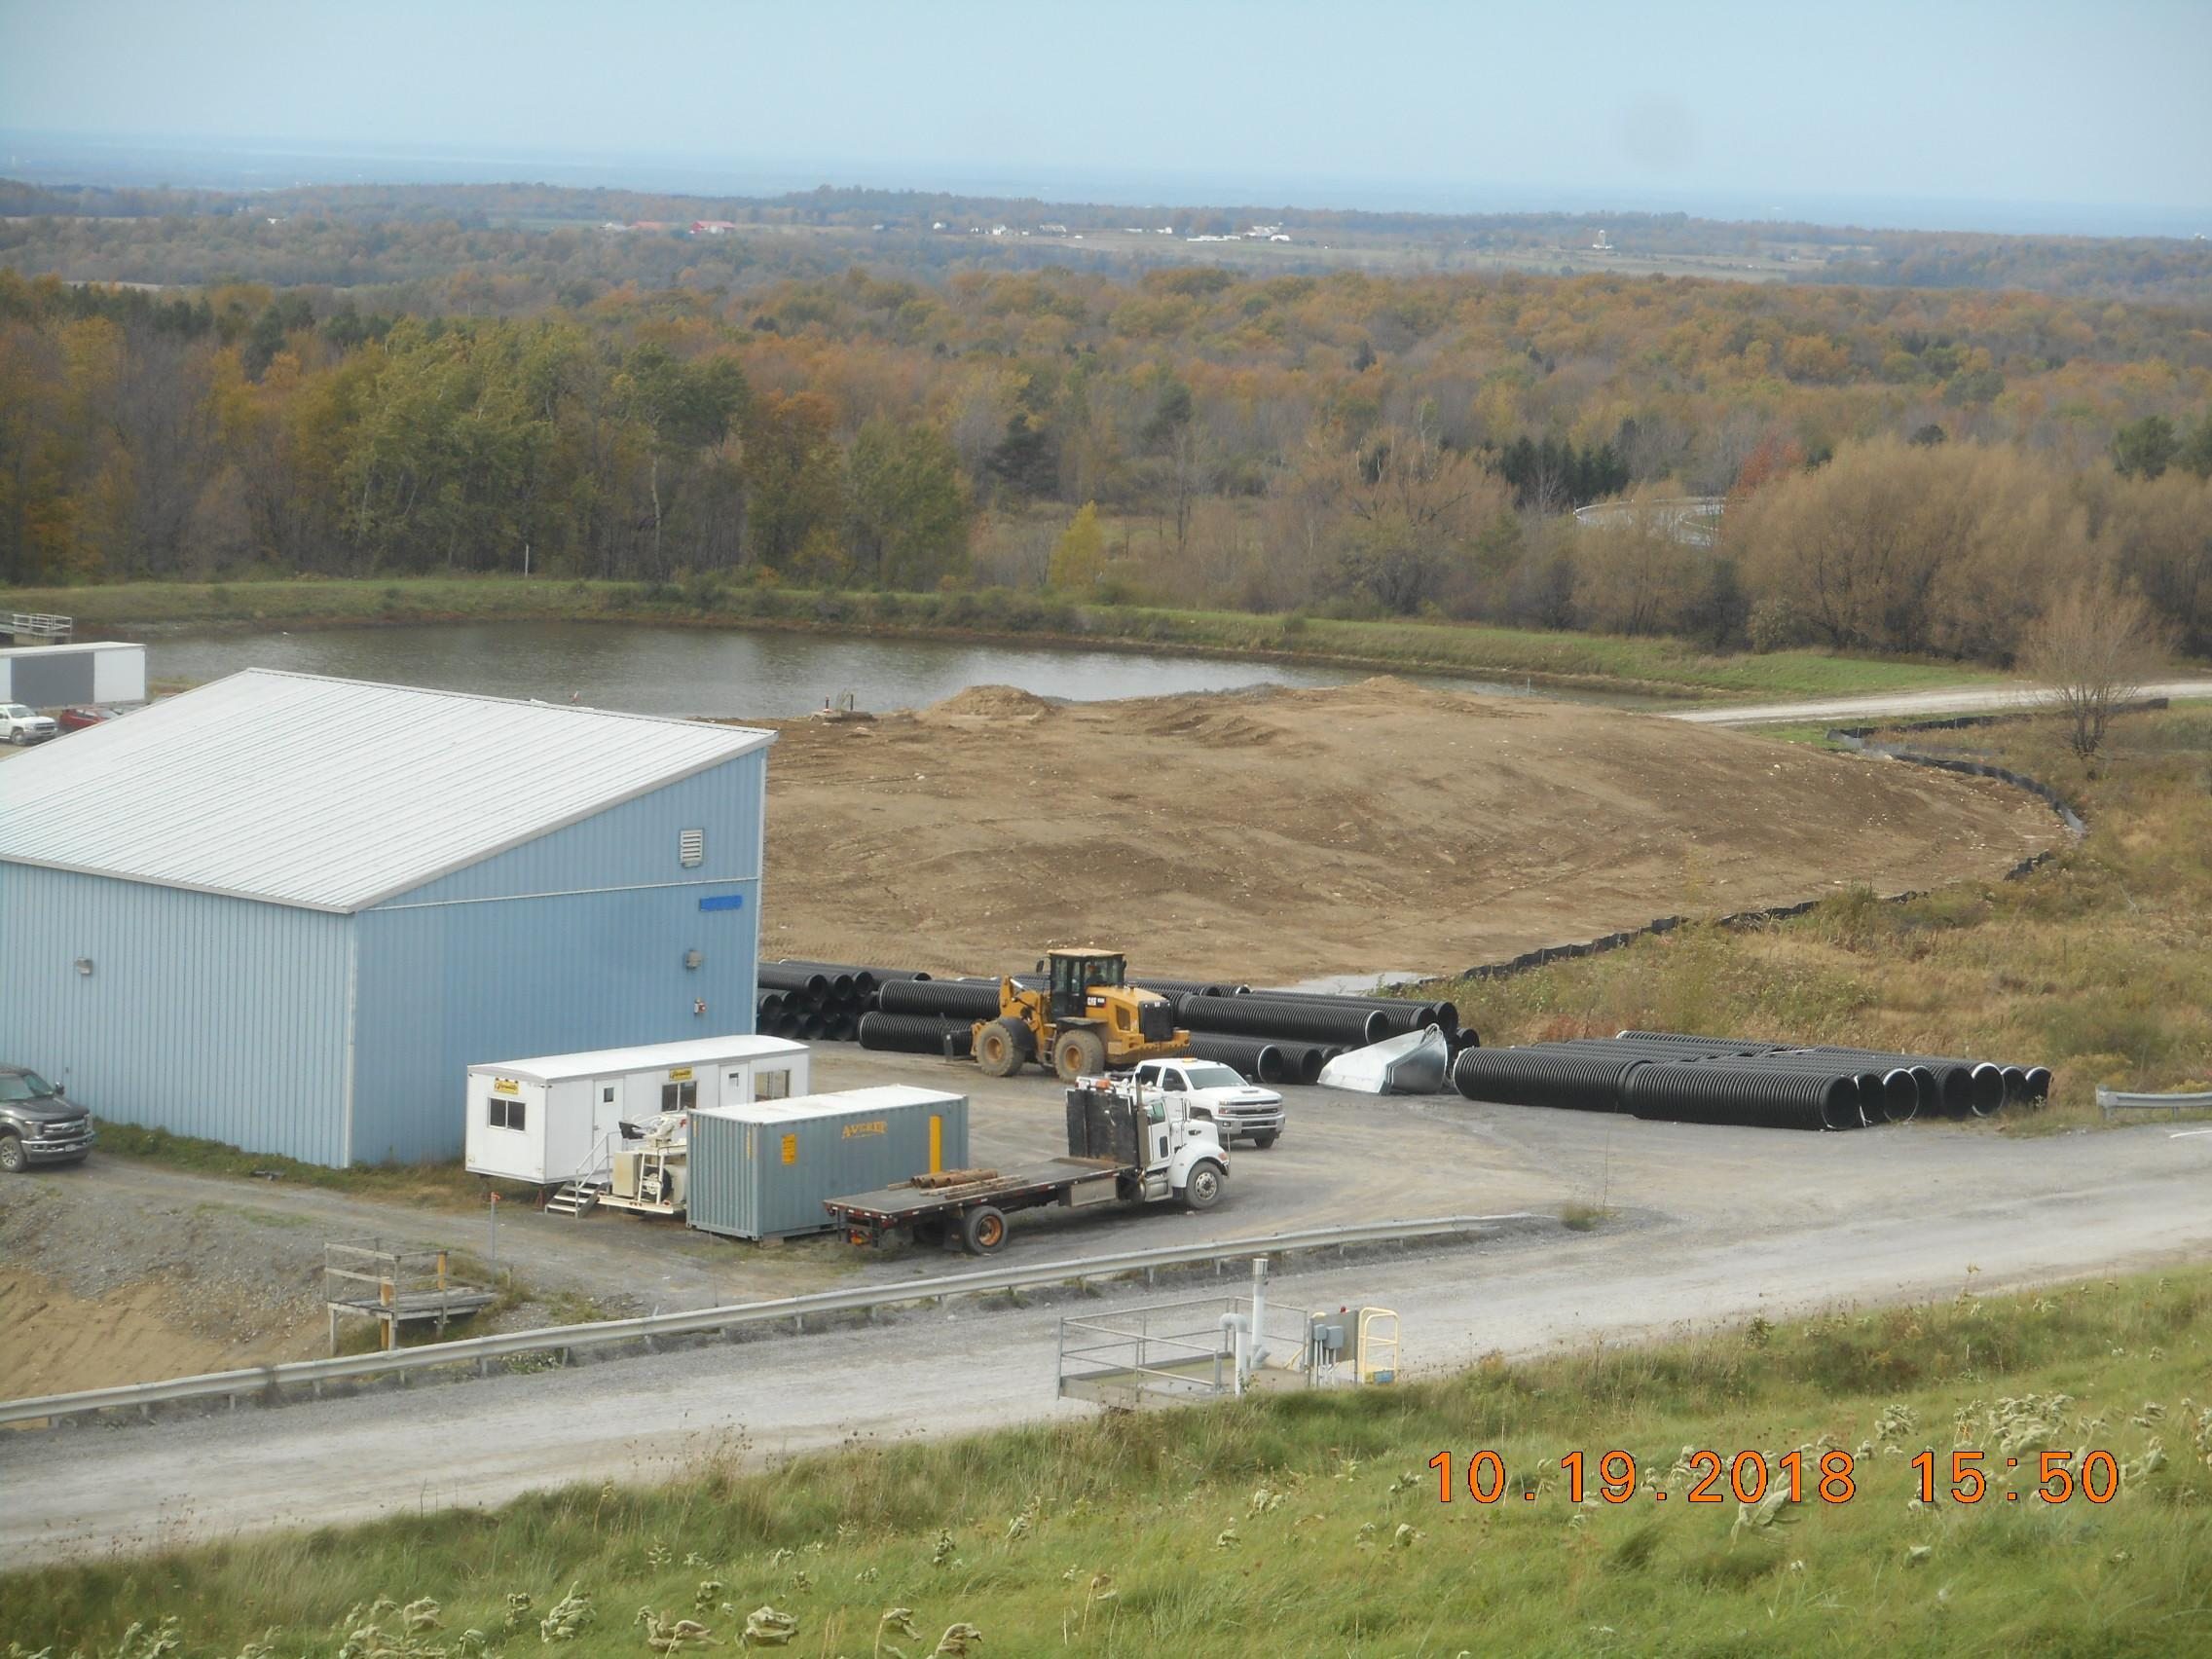 Development Authority of the North Country (DANC) Materials Management Facility Expansion